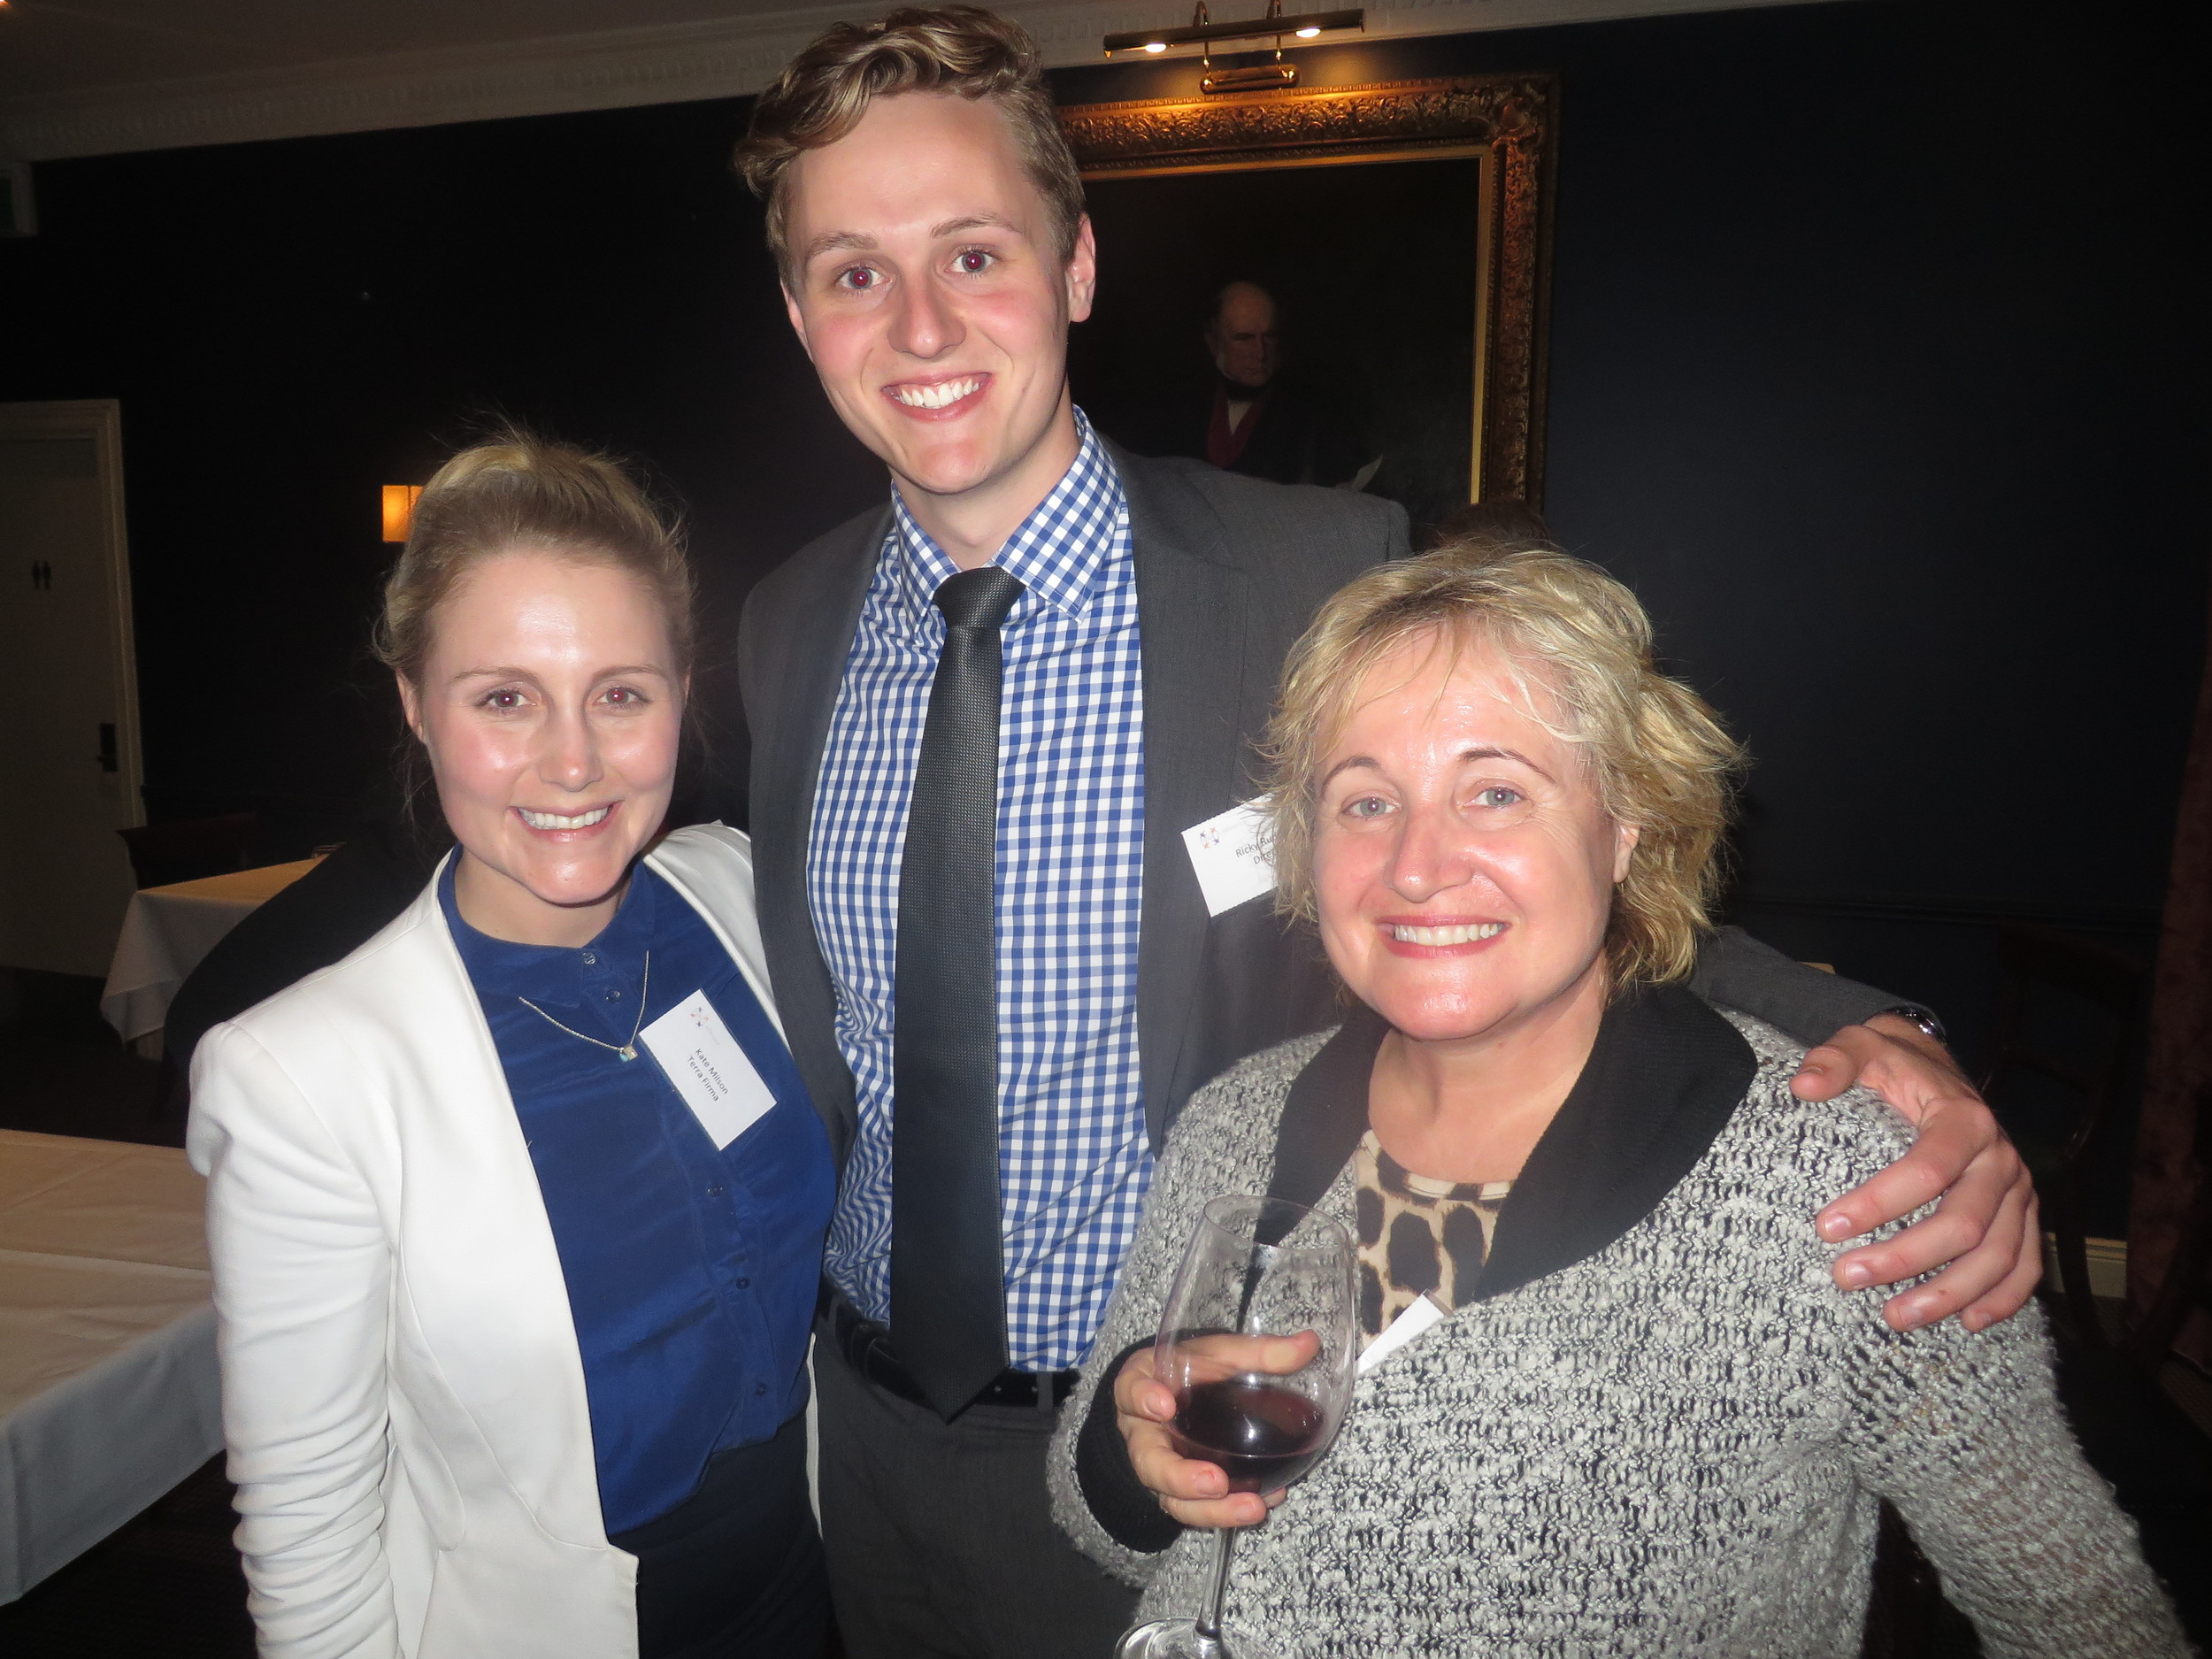 Kate Milson from Terra Firma with Make a Difference Director Ricky Rudduck and Lyndal Foldvary from Spruson & Ferguson